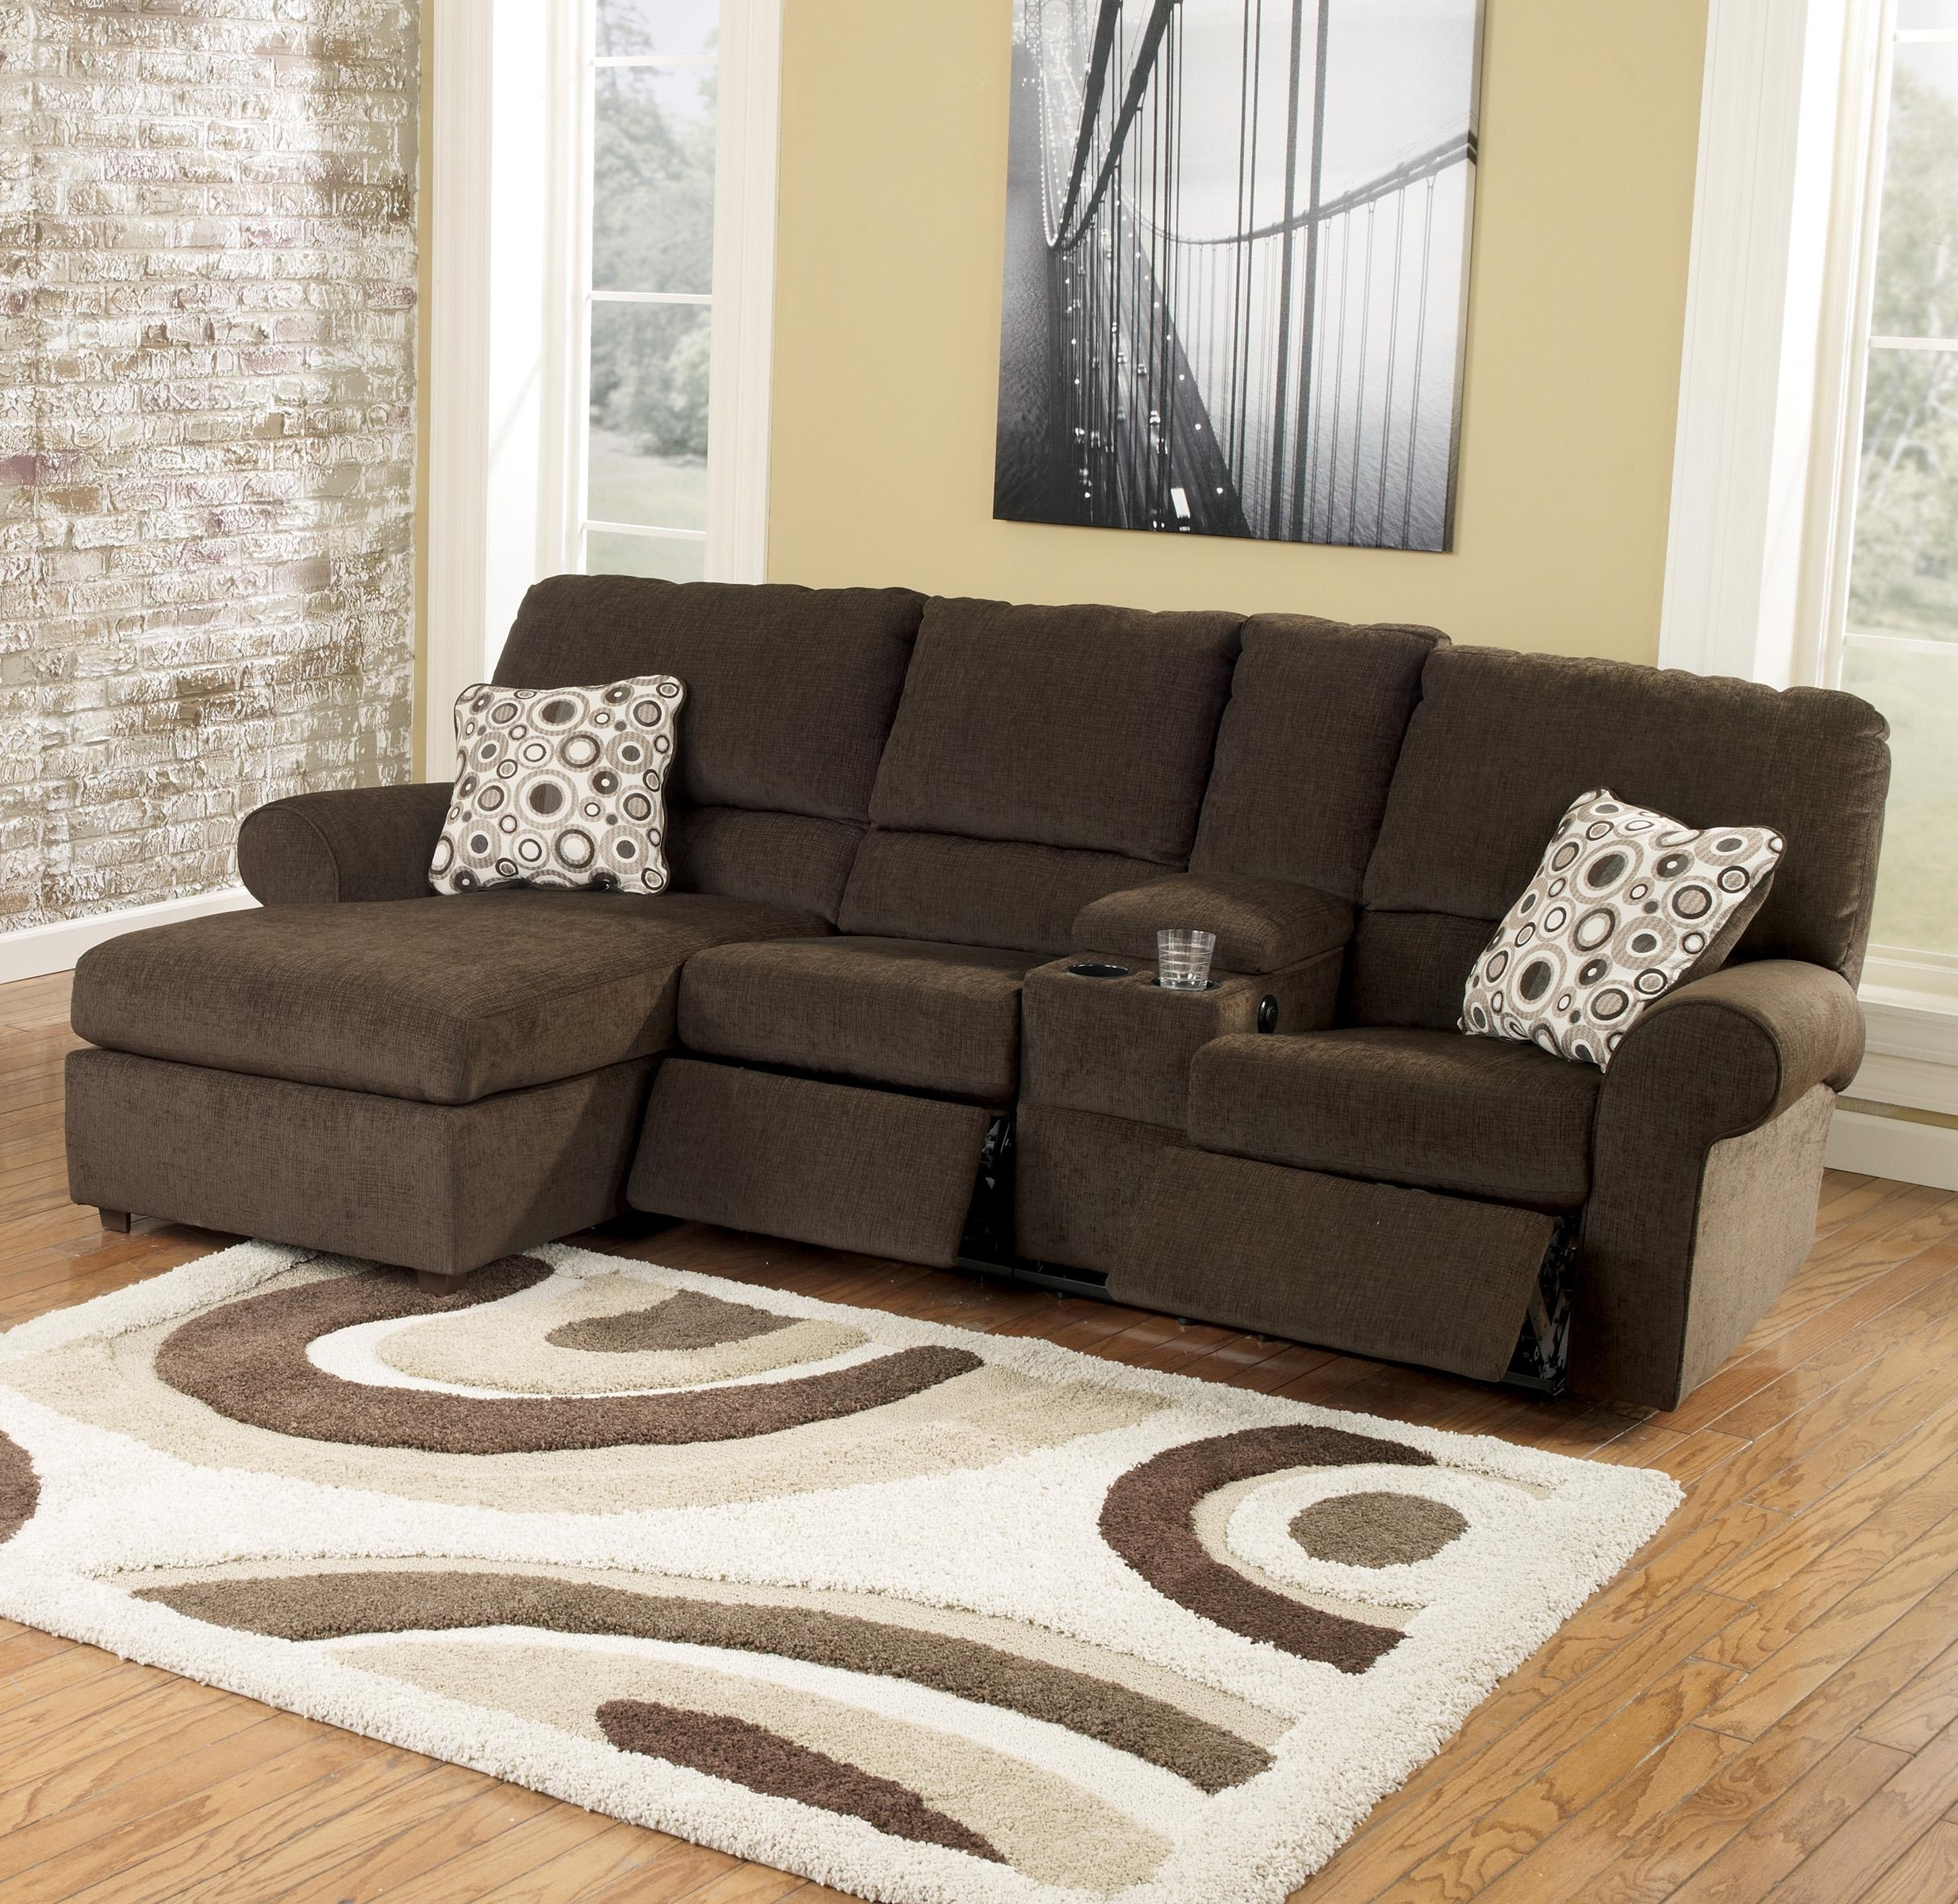 Astonishing Sectional Sofas With Chaise And Recliner 31 About Intended For Trendy Apartment Size Sectionals With Chaise (View 5 of 15)